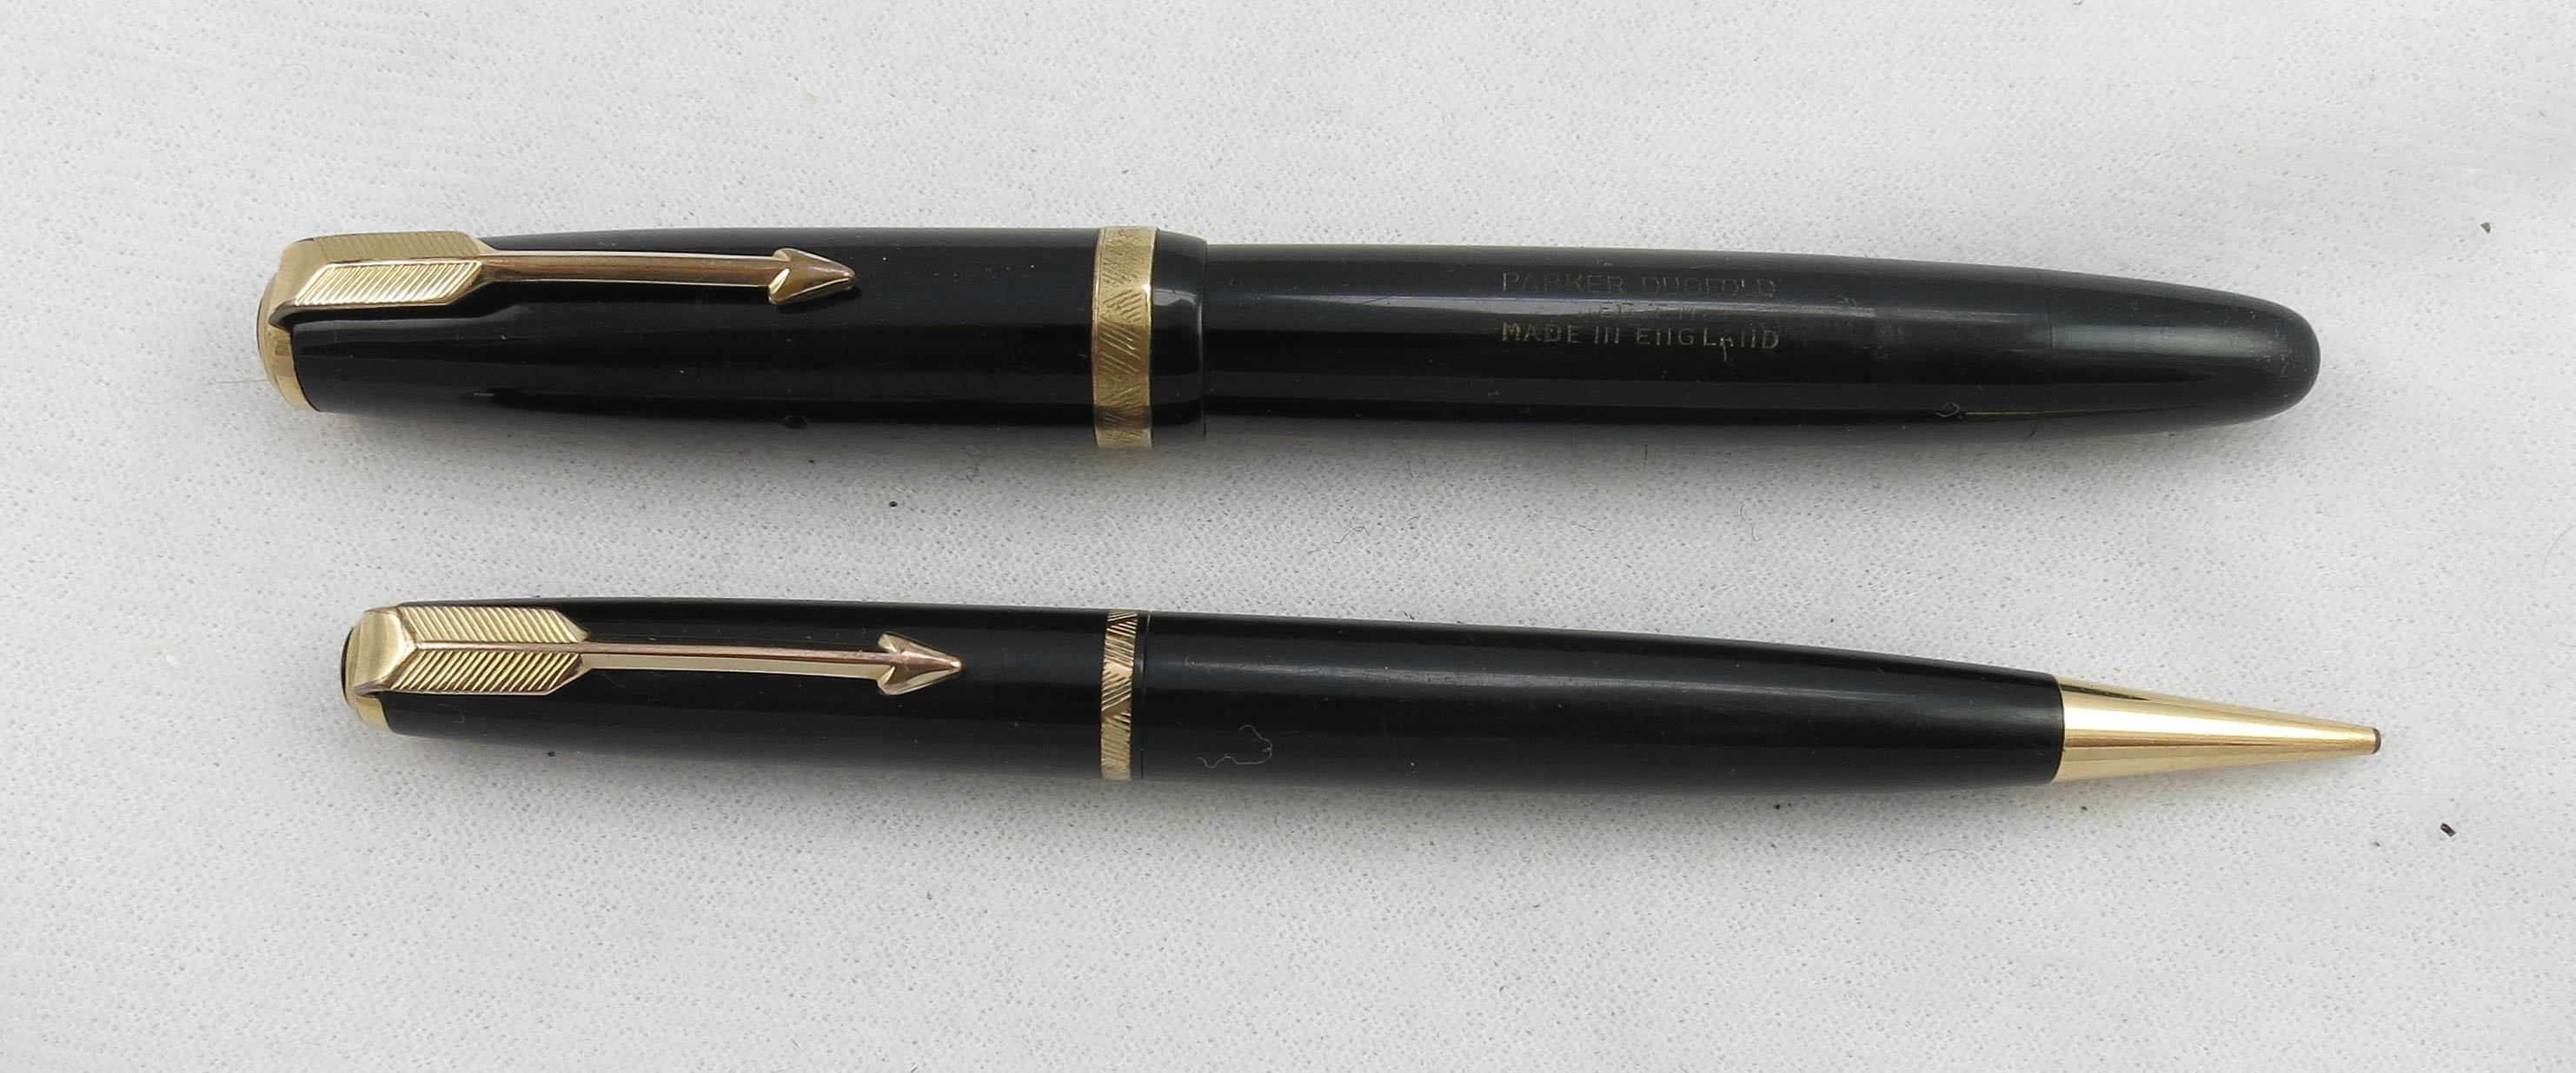 English Duofold Pen & Pencil Set (SB520) - PRICE REDUCED